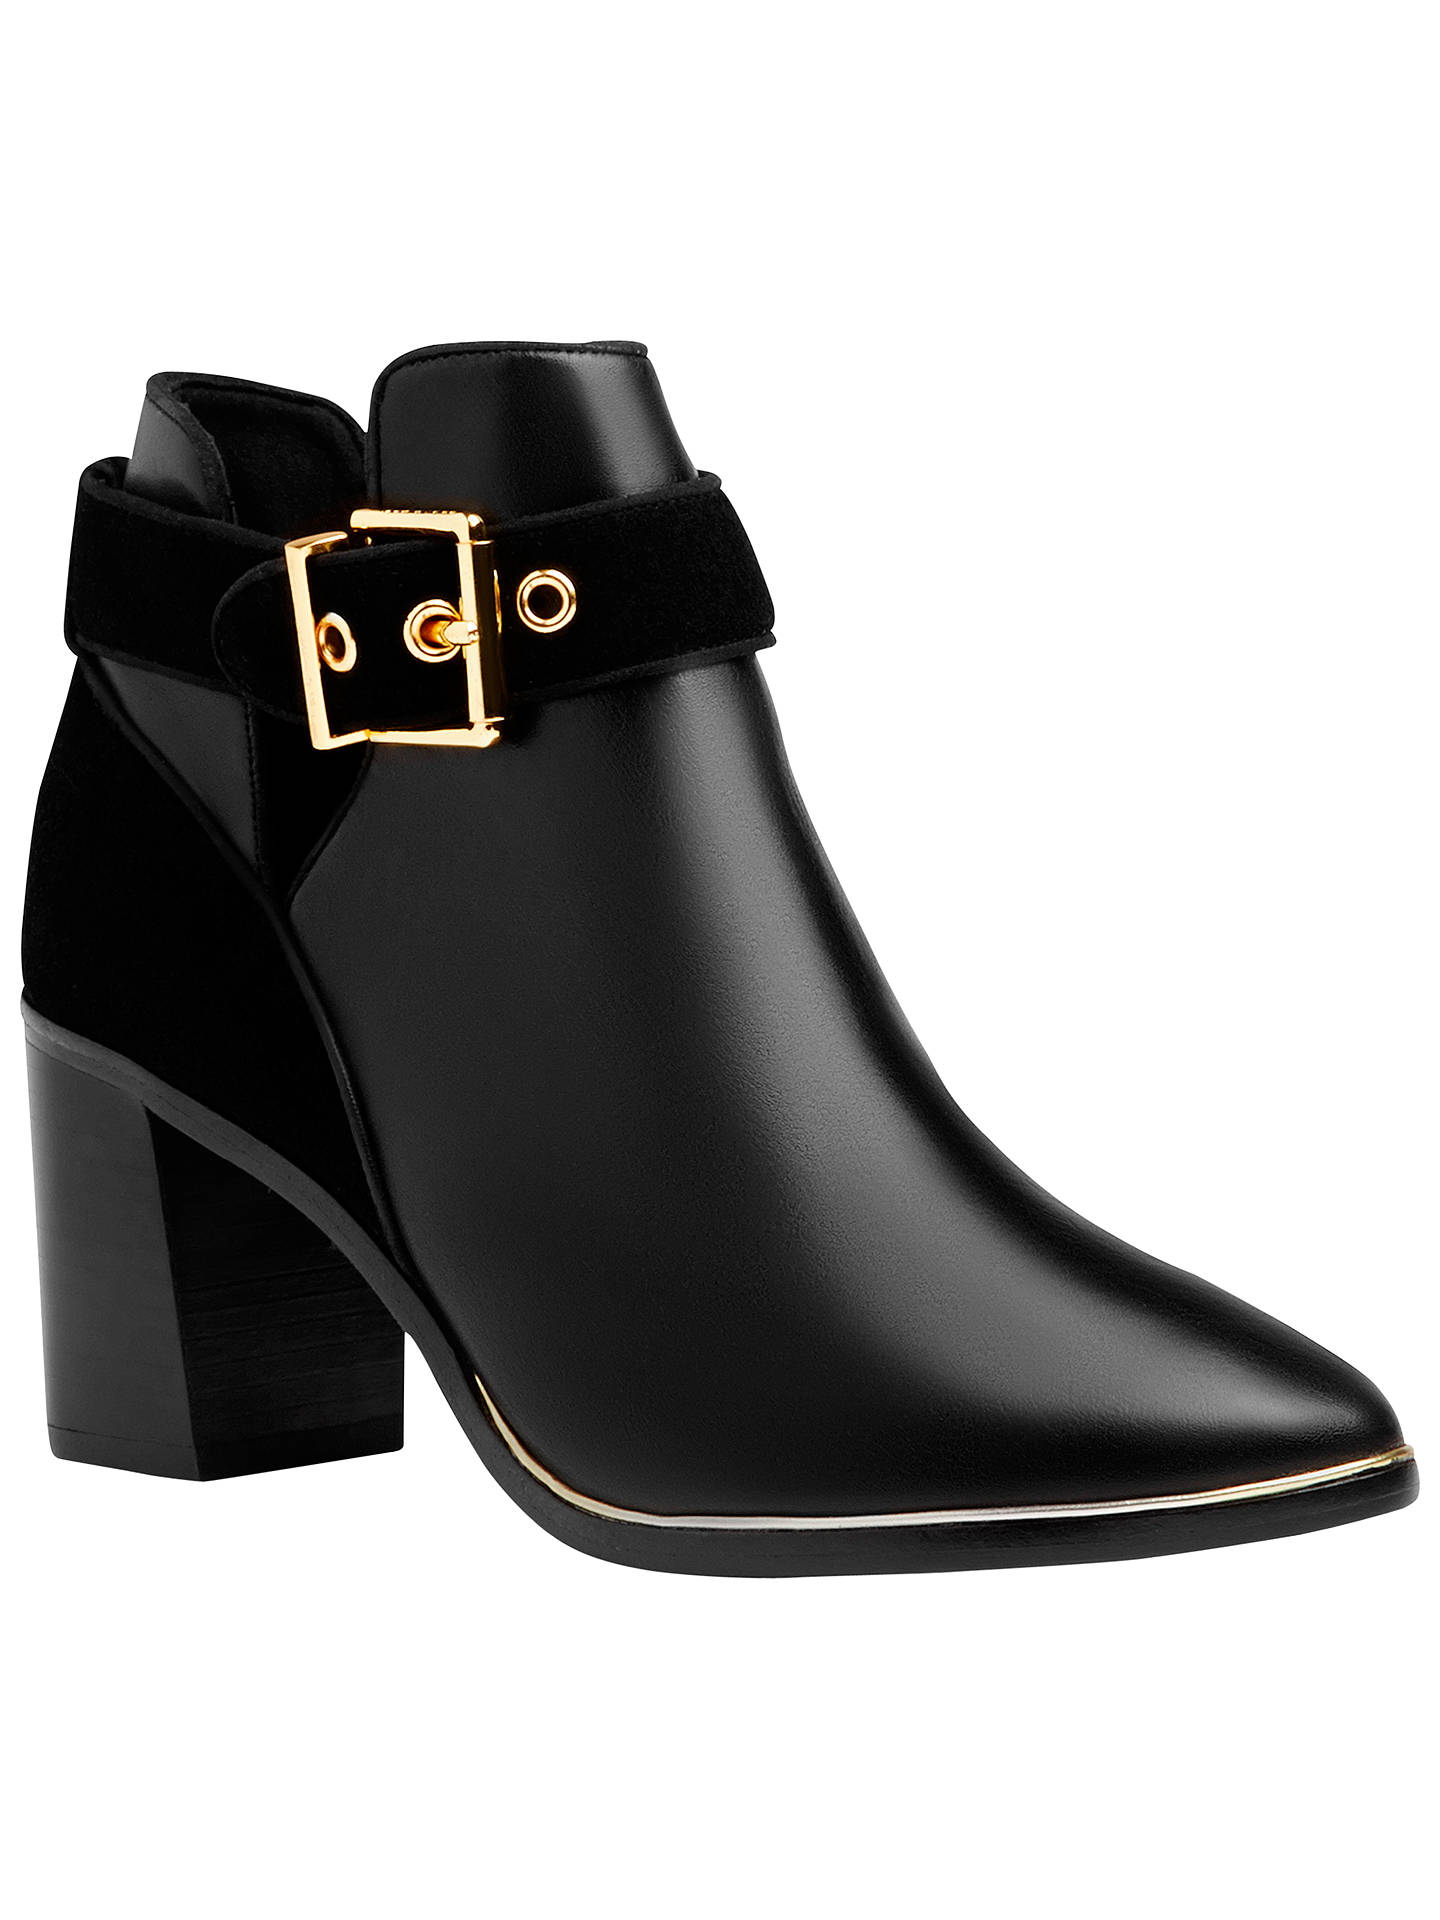 BuyTed Baker Nissie Block Heel Ankle Boots, Black, 4 Online at johnlewis.com